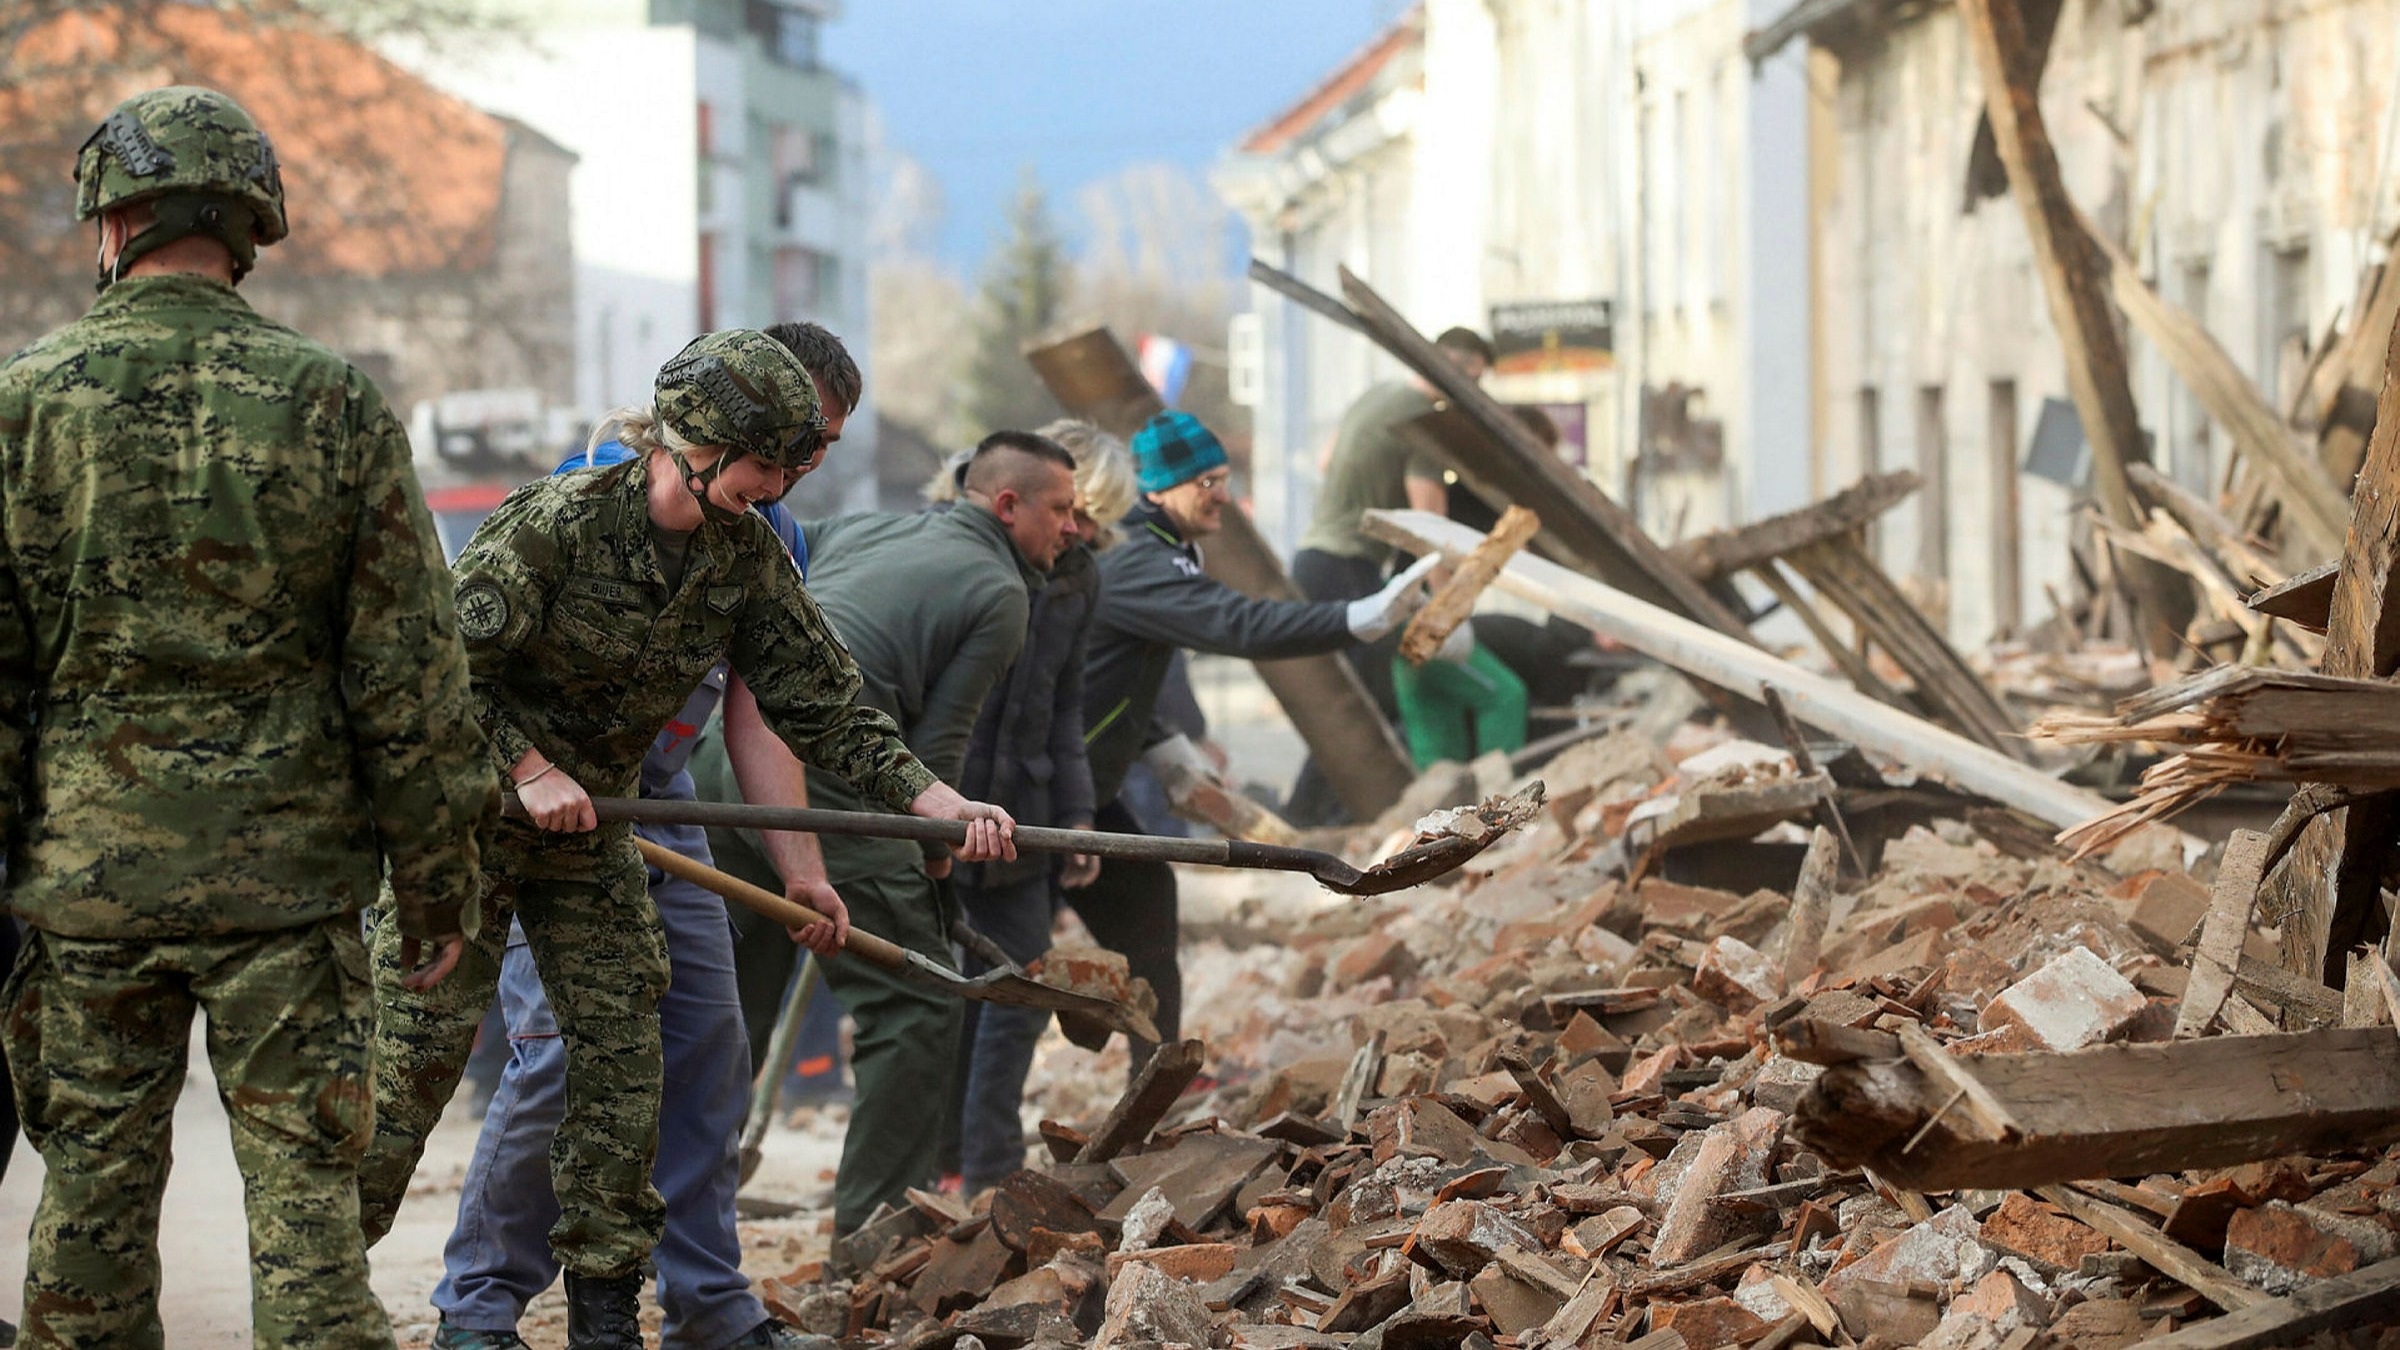 Croatian Earthquake Claims At Least 7 Lives Financial Times